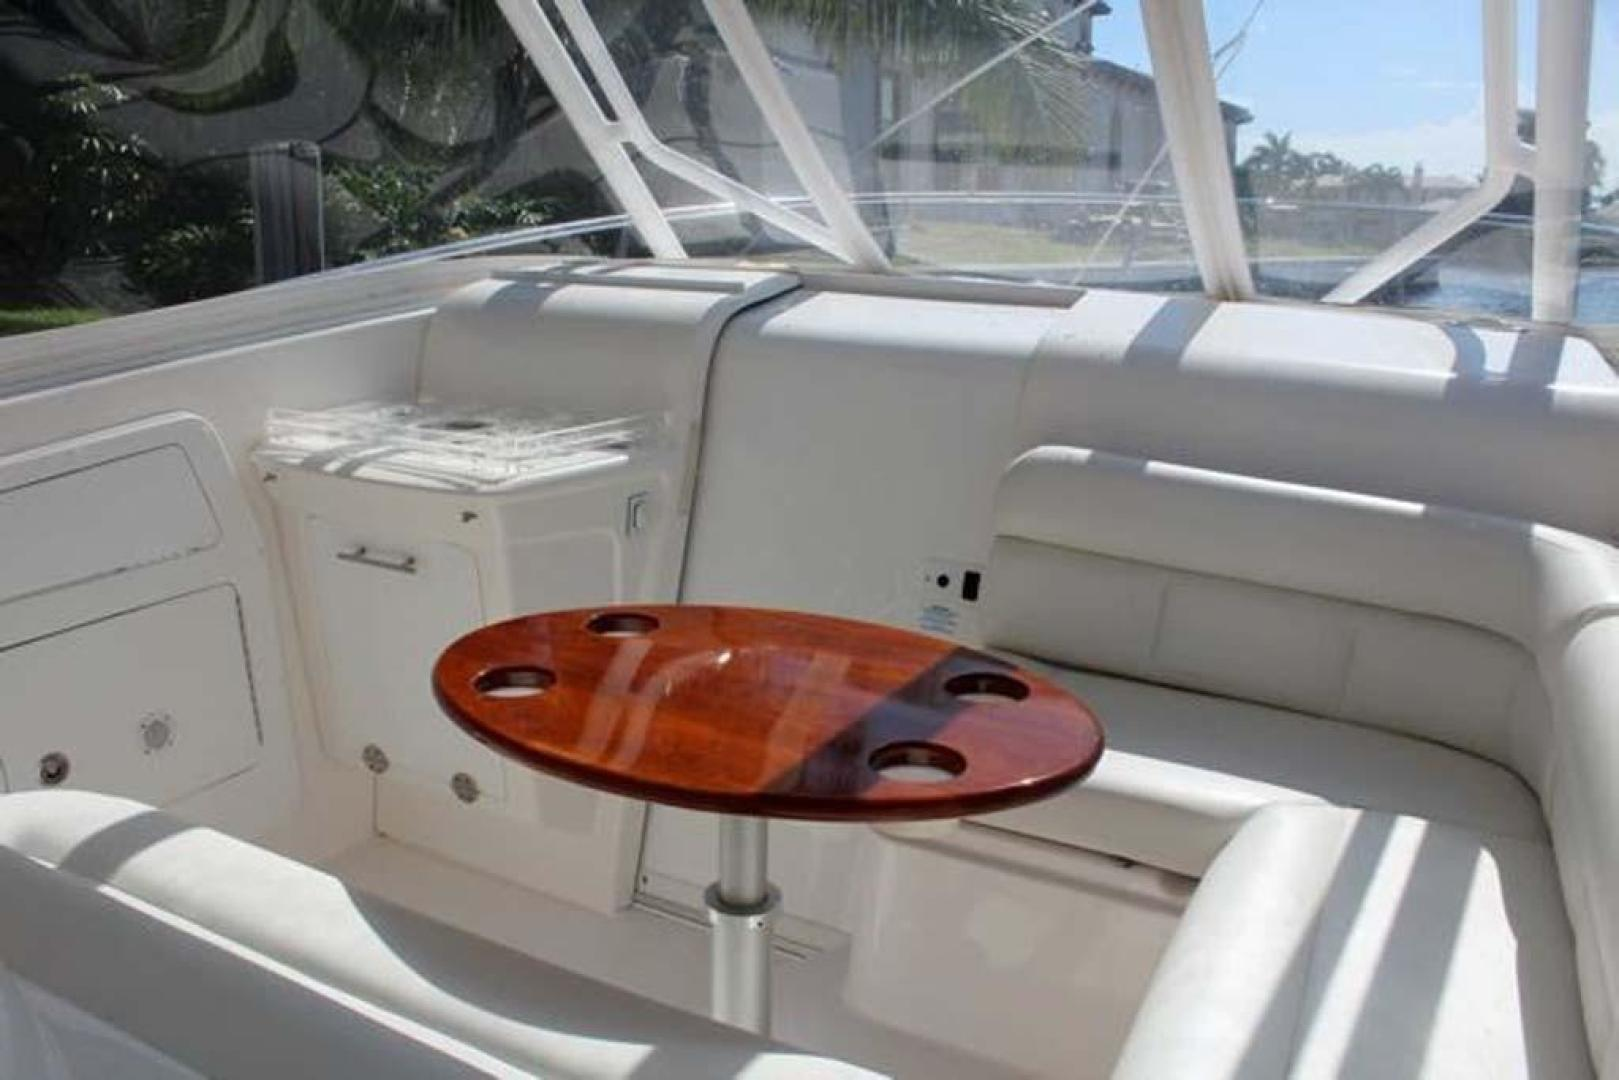 Everglades-35 LX NEW POWER 2010 -Delray Beach-Florida-United States-Fwd Seating-923988 | Thumbnail